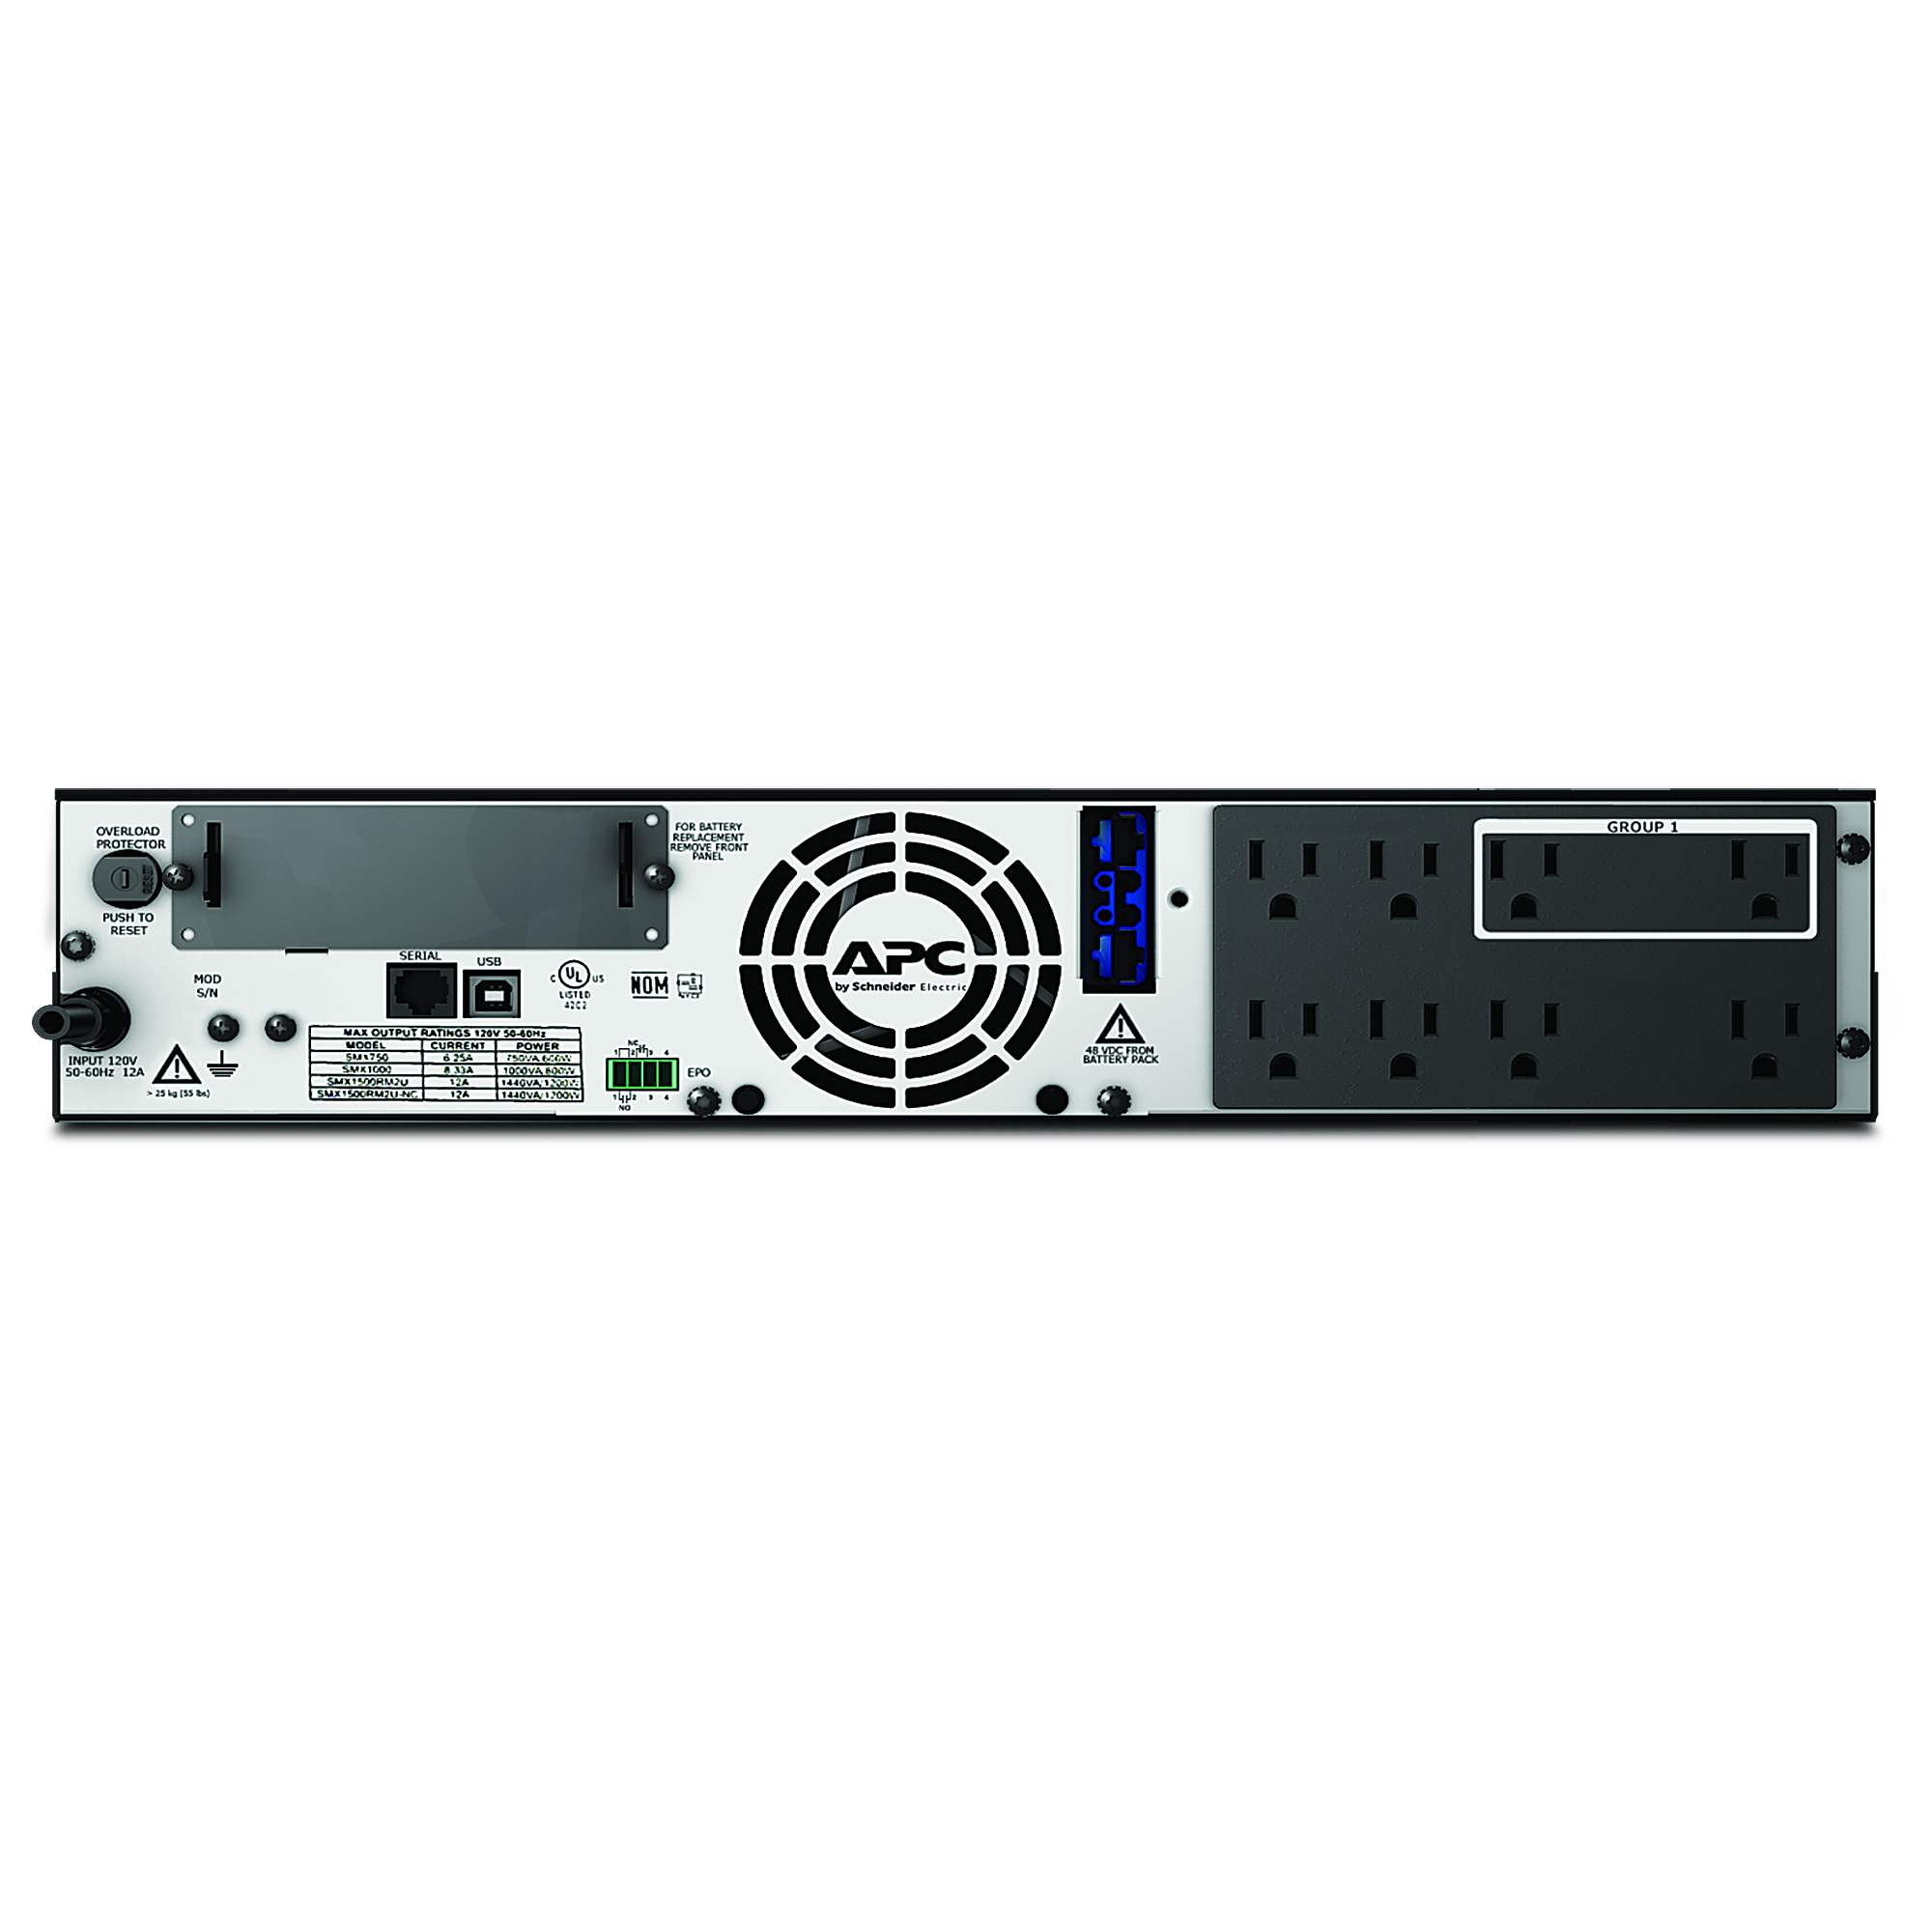 APC Smart-UPS X 750VA Tower/Rack - UPS - 600 Watt - 750 VA - with APC UPS  Network Management Card AP9631